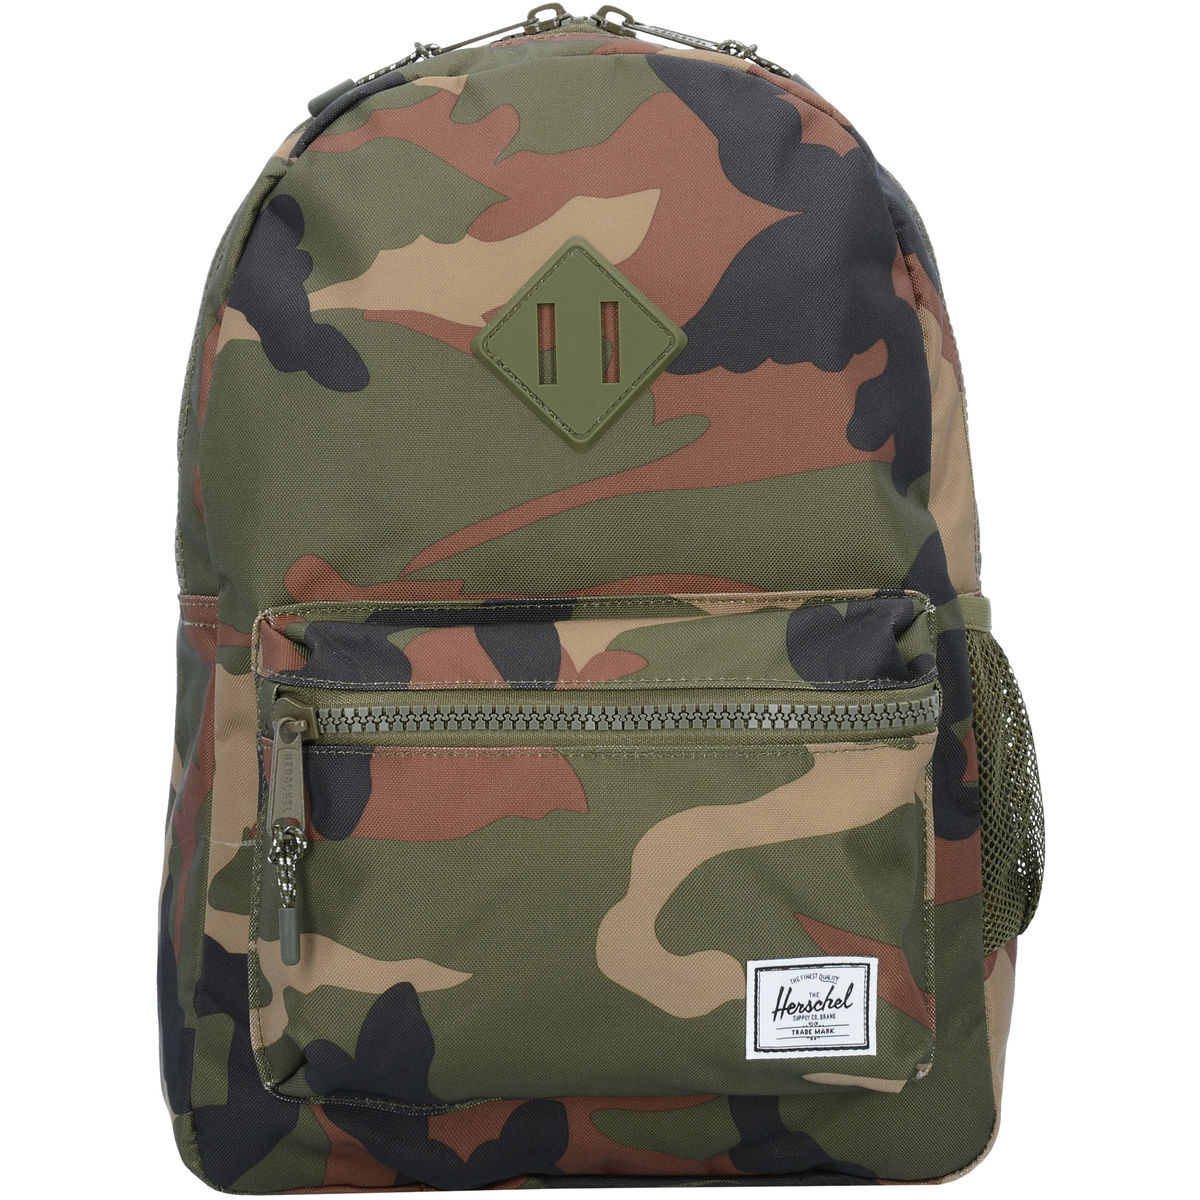 a61094d0a8b09 Herschel Rucksack Army Rubber Youth 38 CmWoodland Camo Heritage c3FK1JTl